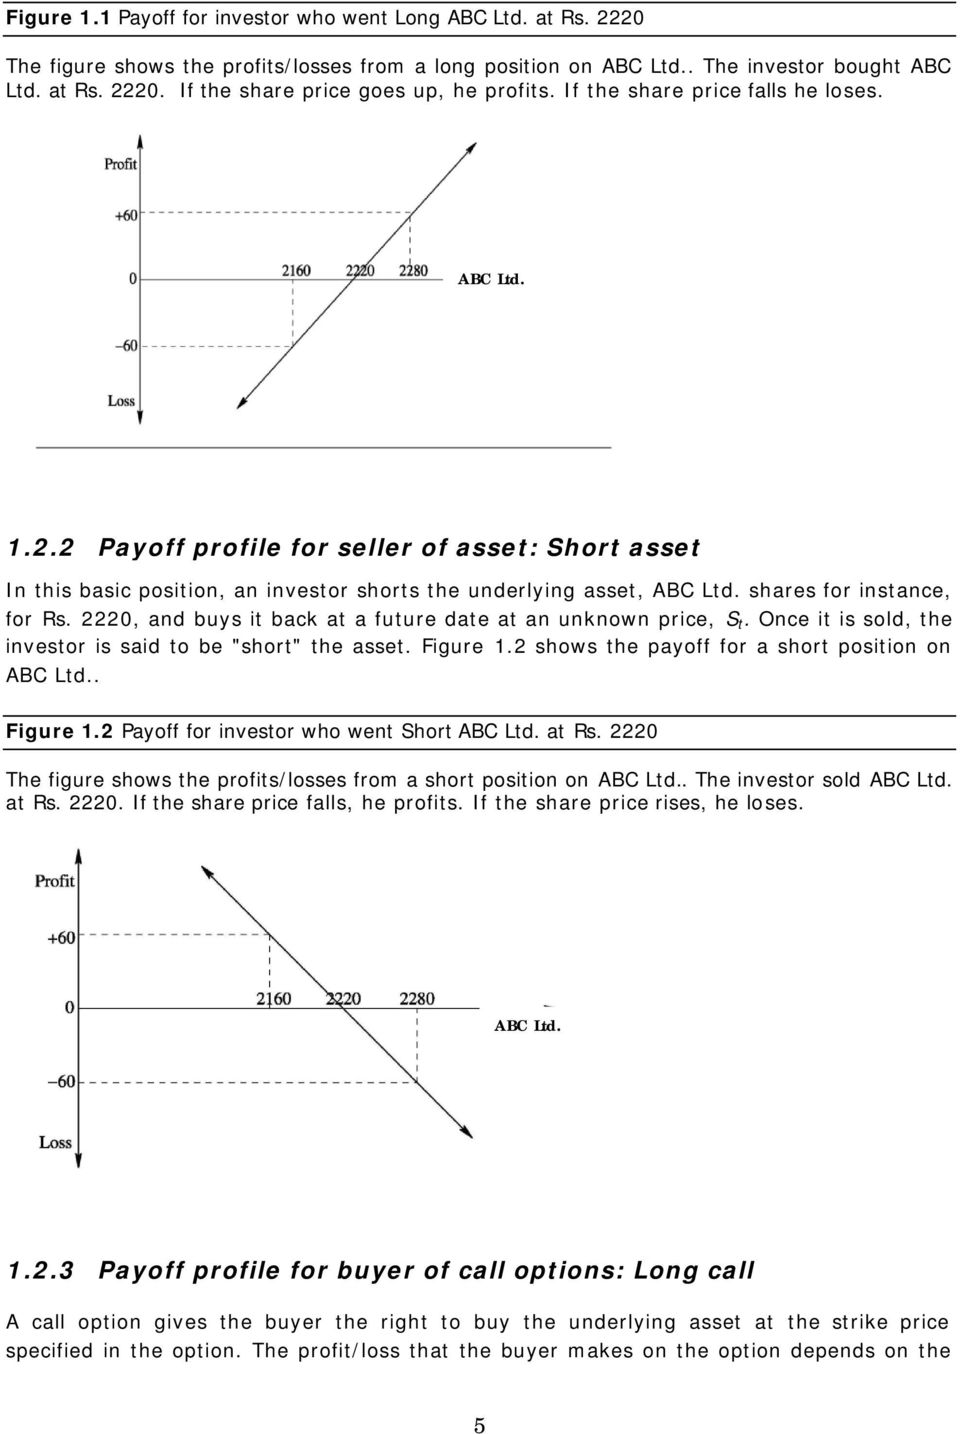 "2220, and buys it back at a future date at an unknown price, S t. Once it is sold, the investor is said to be ""short"" the asset. Figure 1.2 shows the payoff for a short position on ABC Ltd.. Figure 1.2 Payoff for investor who went Short ABC Ltd."